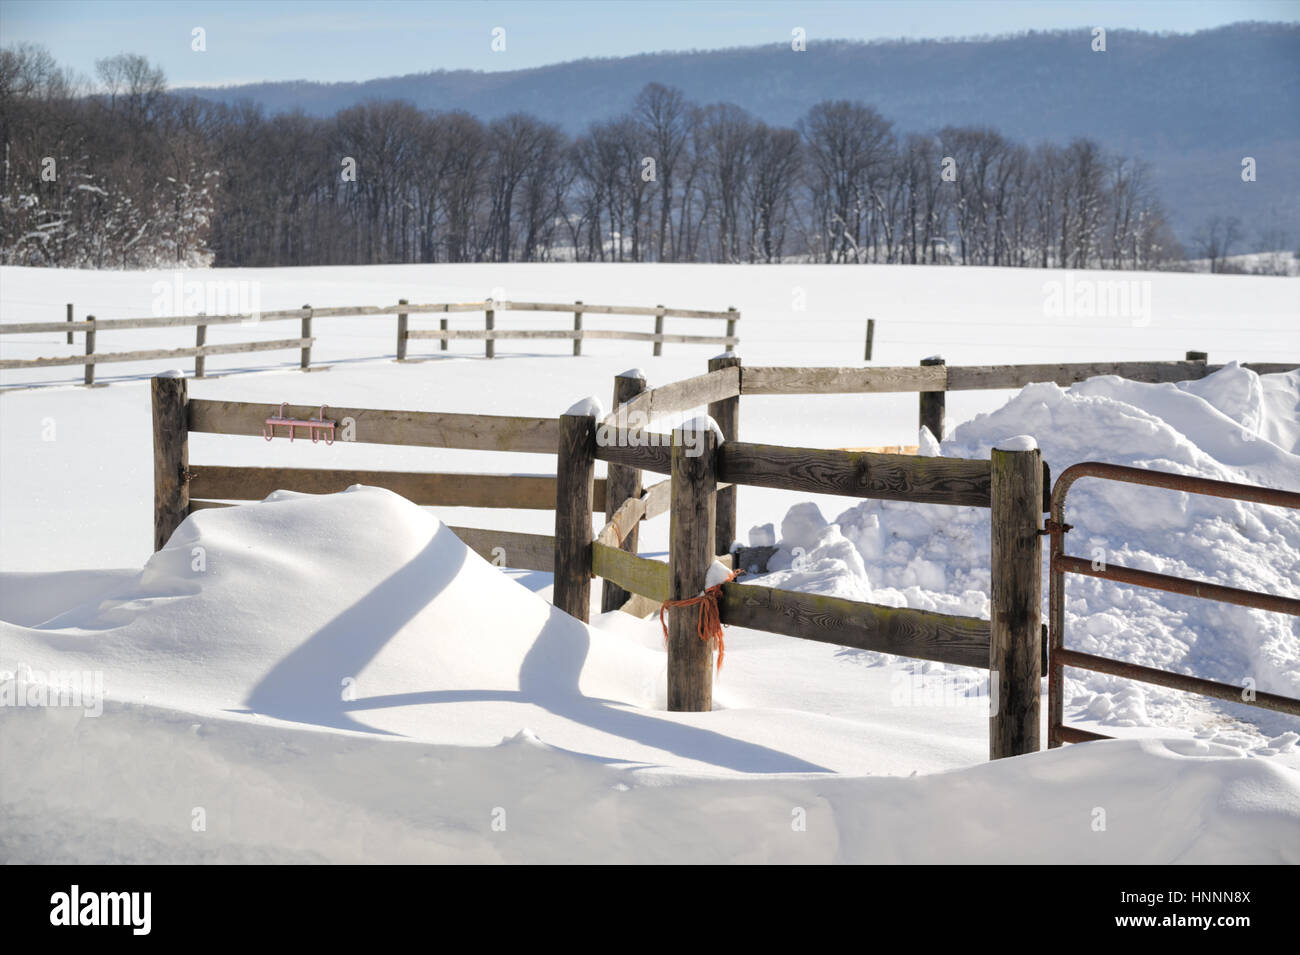 Farm fields with a fenced-in pasture in drifted winter snow for agricultural backgrounds, barren trees and mountain, - Stock Image